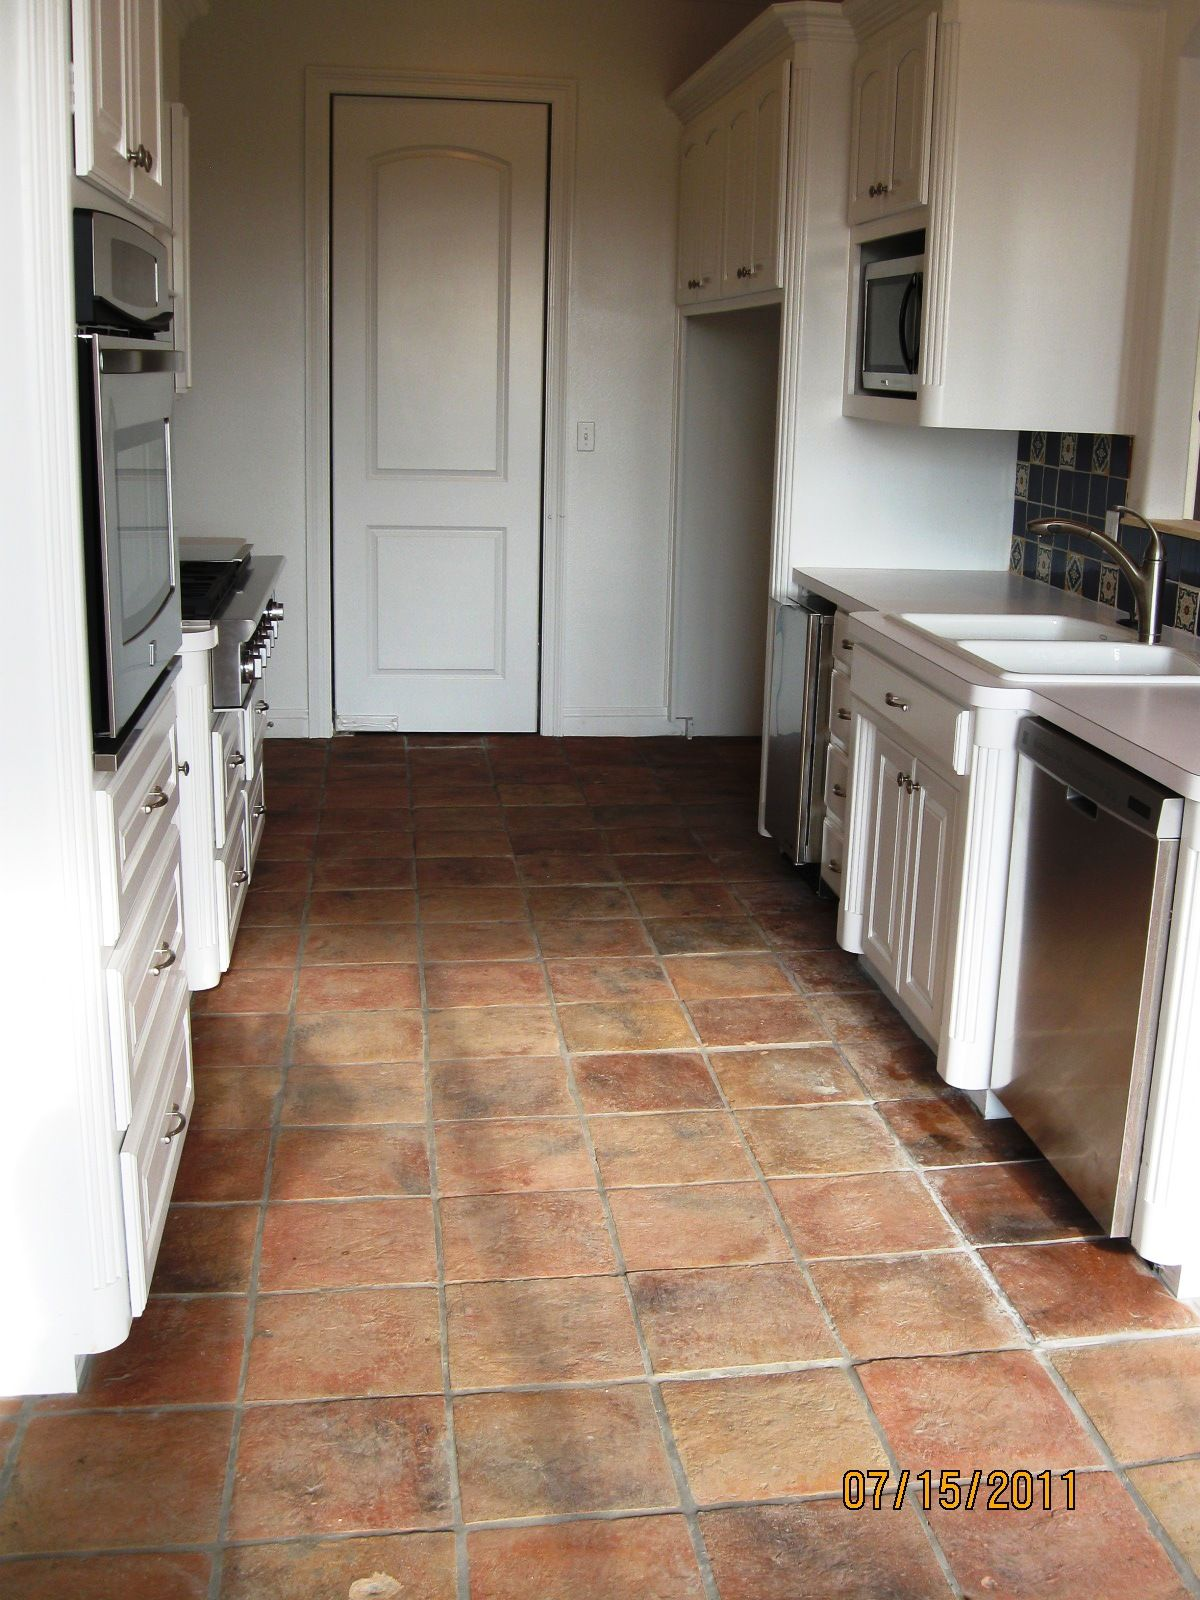 Kitchens With Terracotta Floors Kitchen Terracotta Floor Google Search Ideas For Beach Home